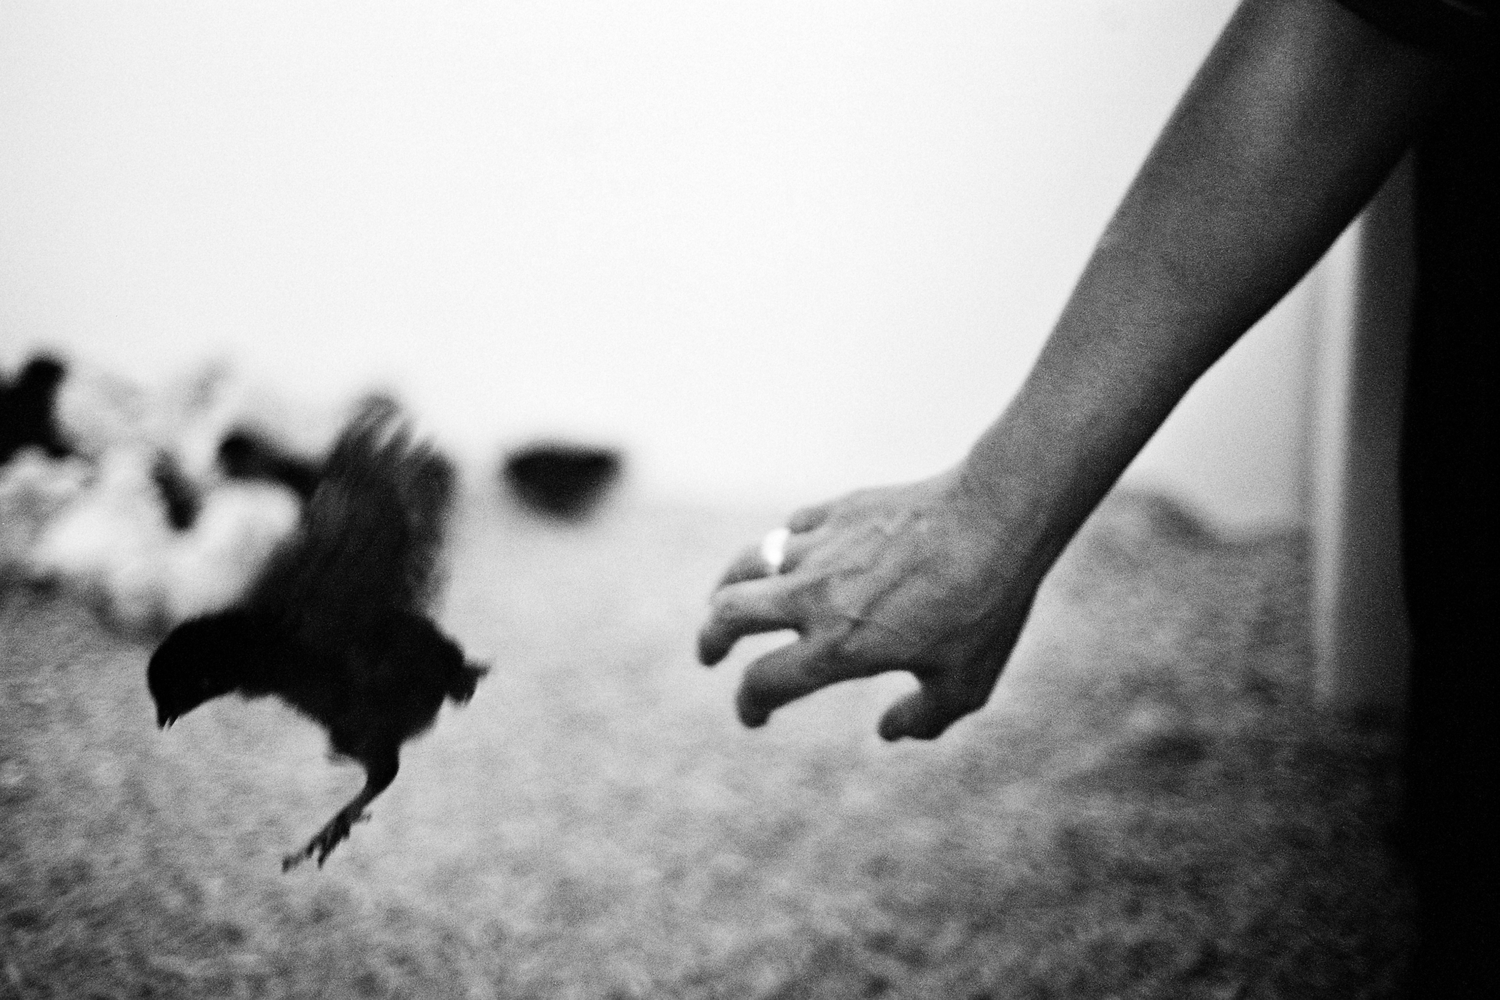 hand reaching out for a black bird